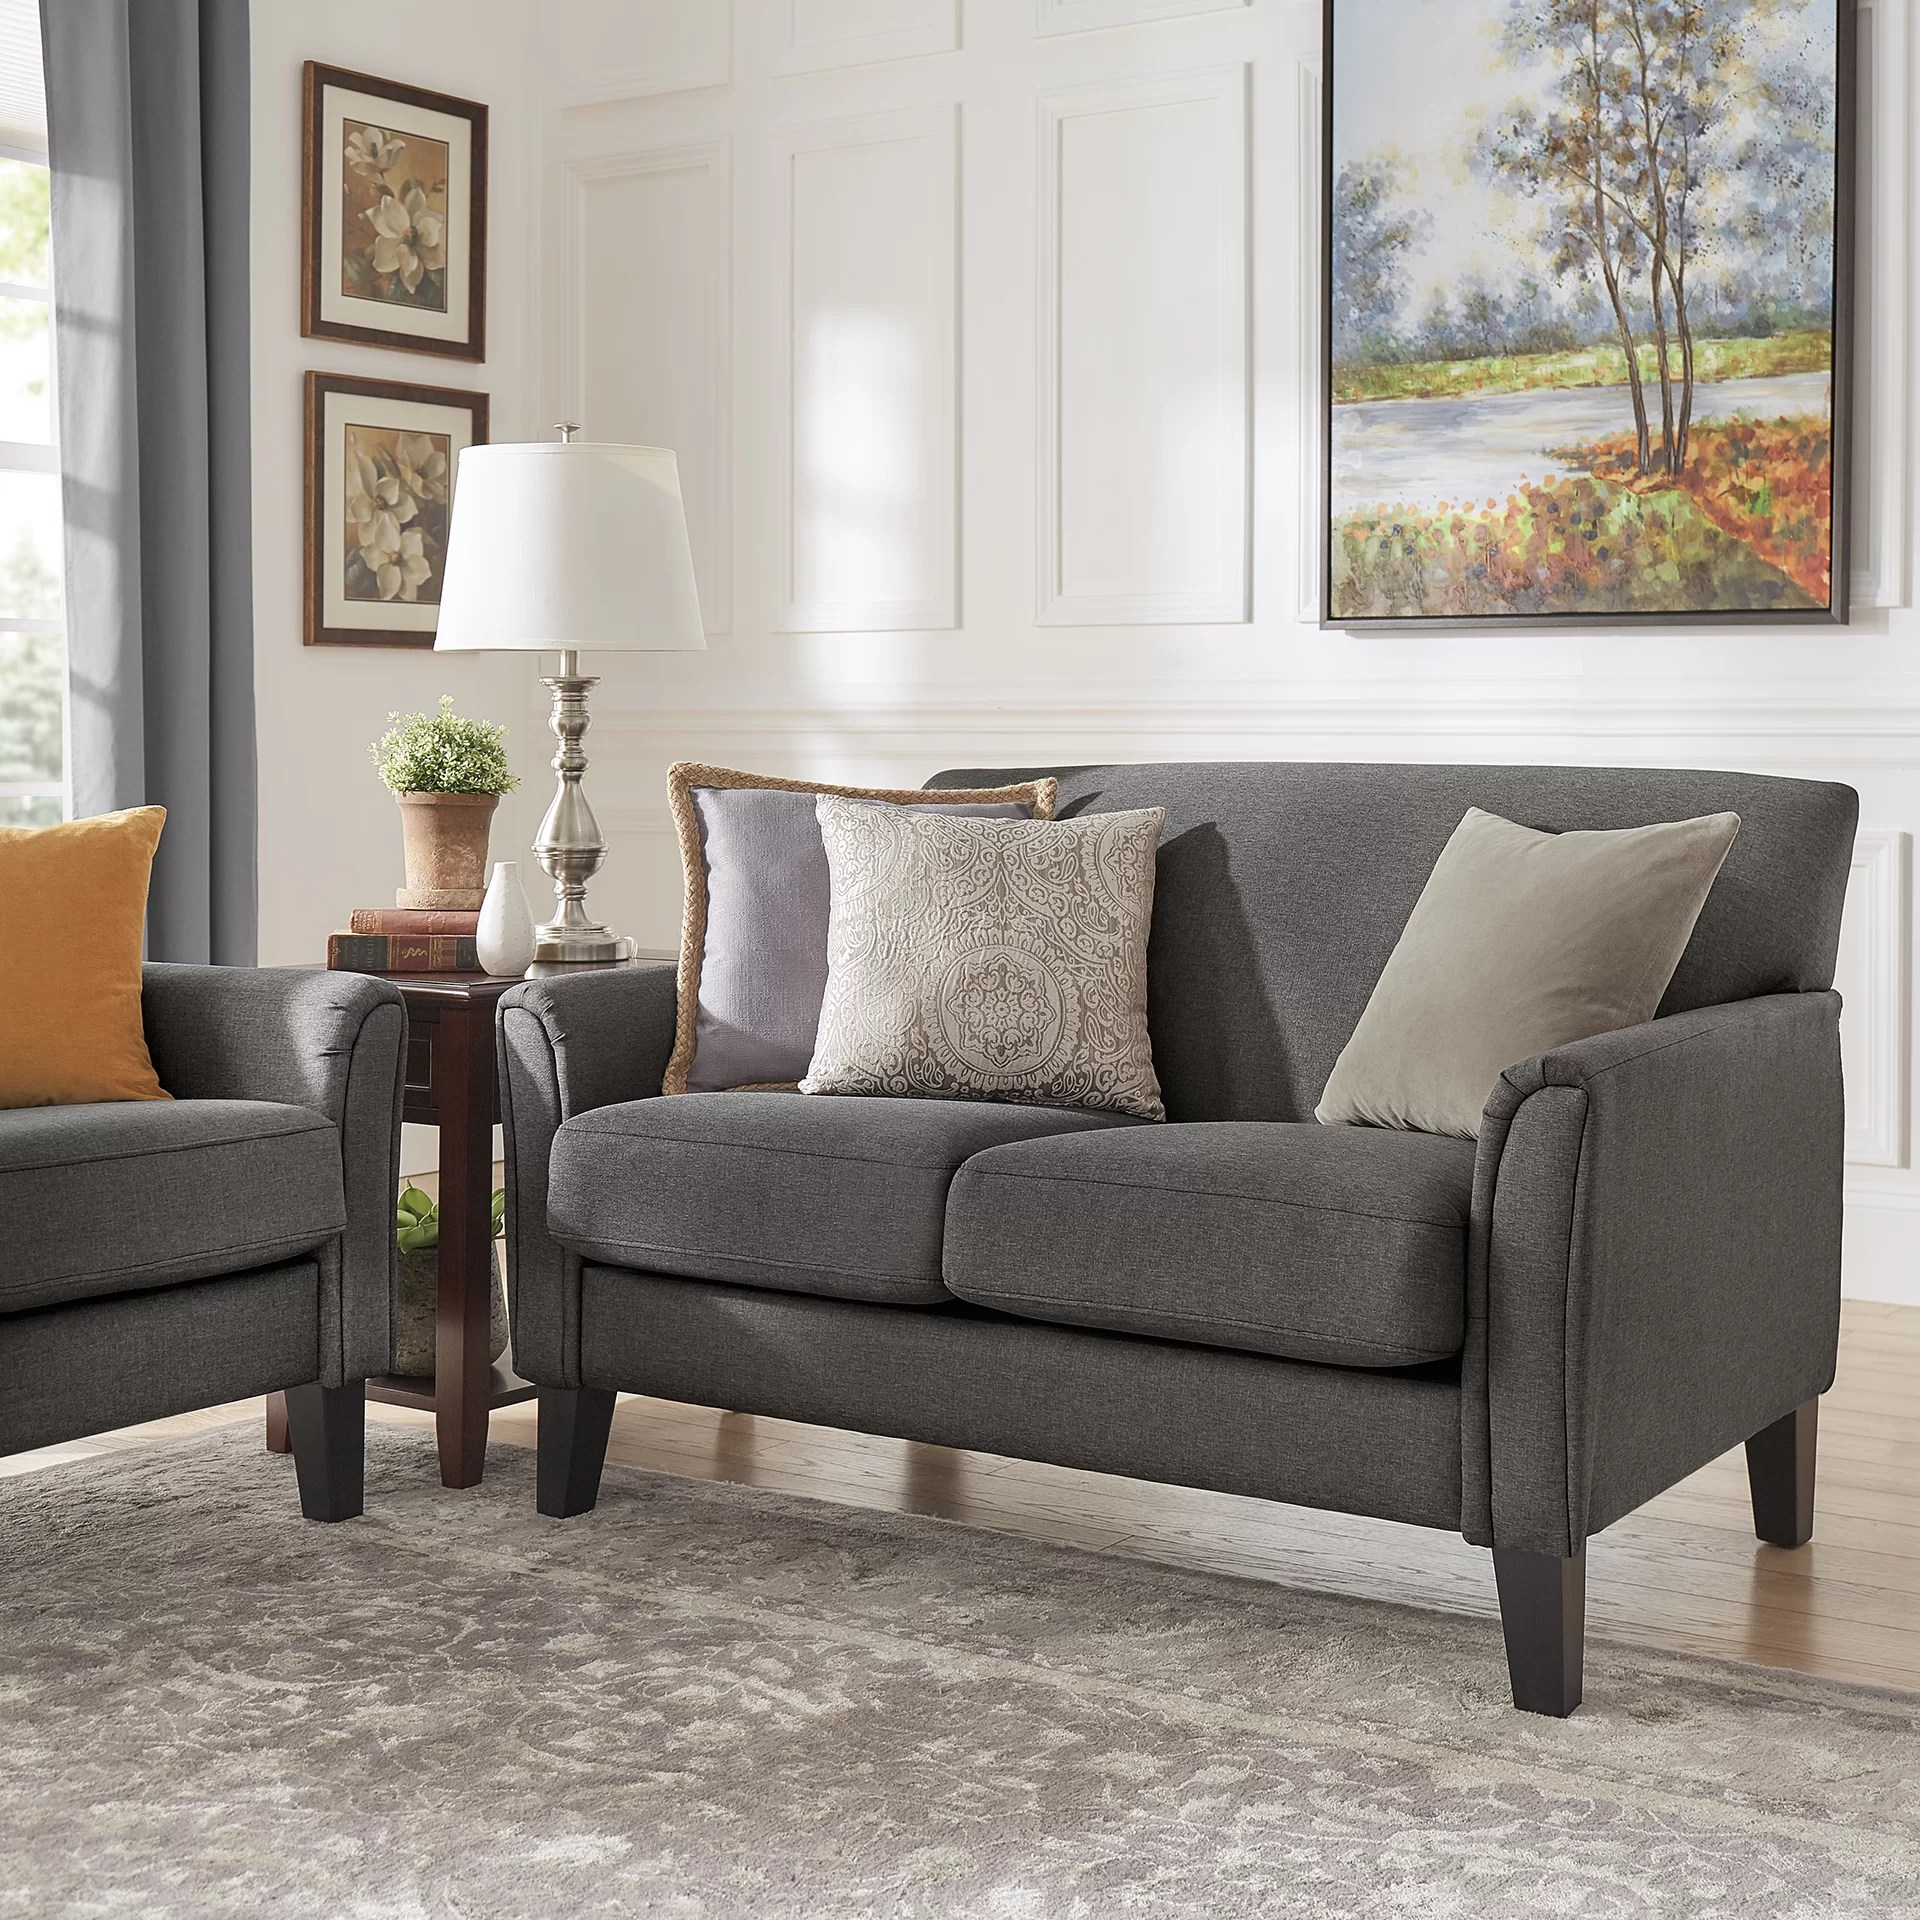 Grey Living Room Furniture Farmhouse Rustic Living Room Furniture Birch Lane